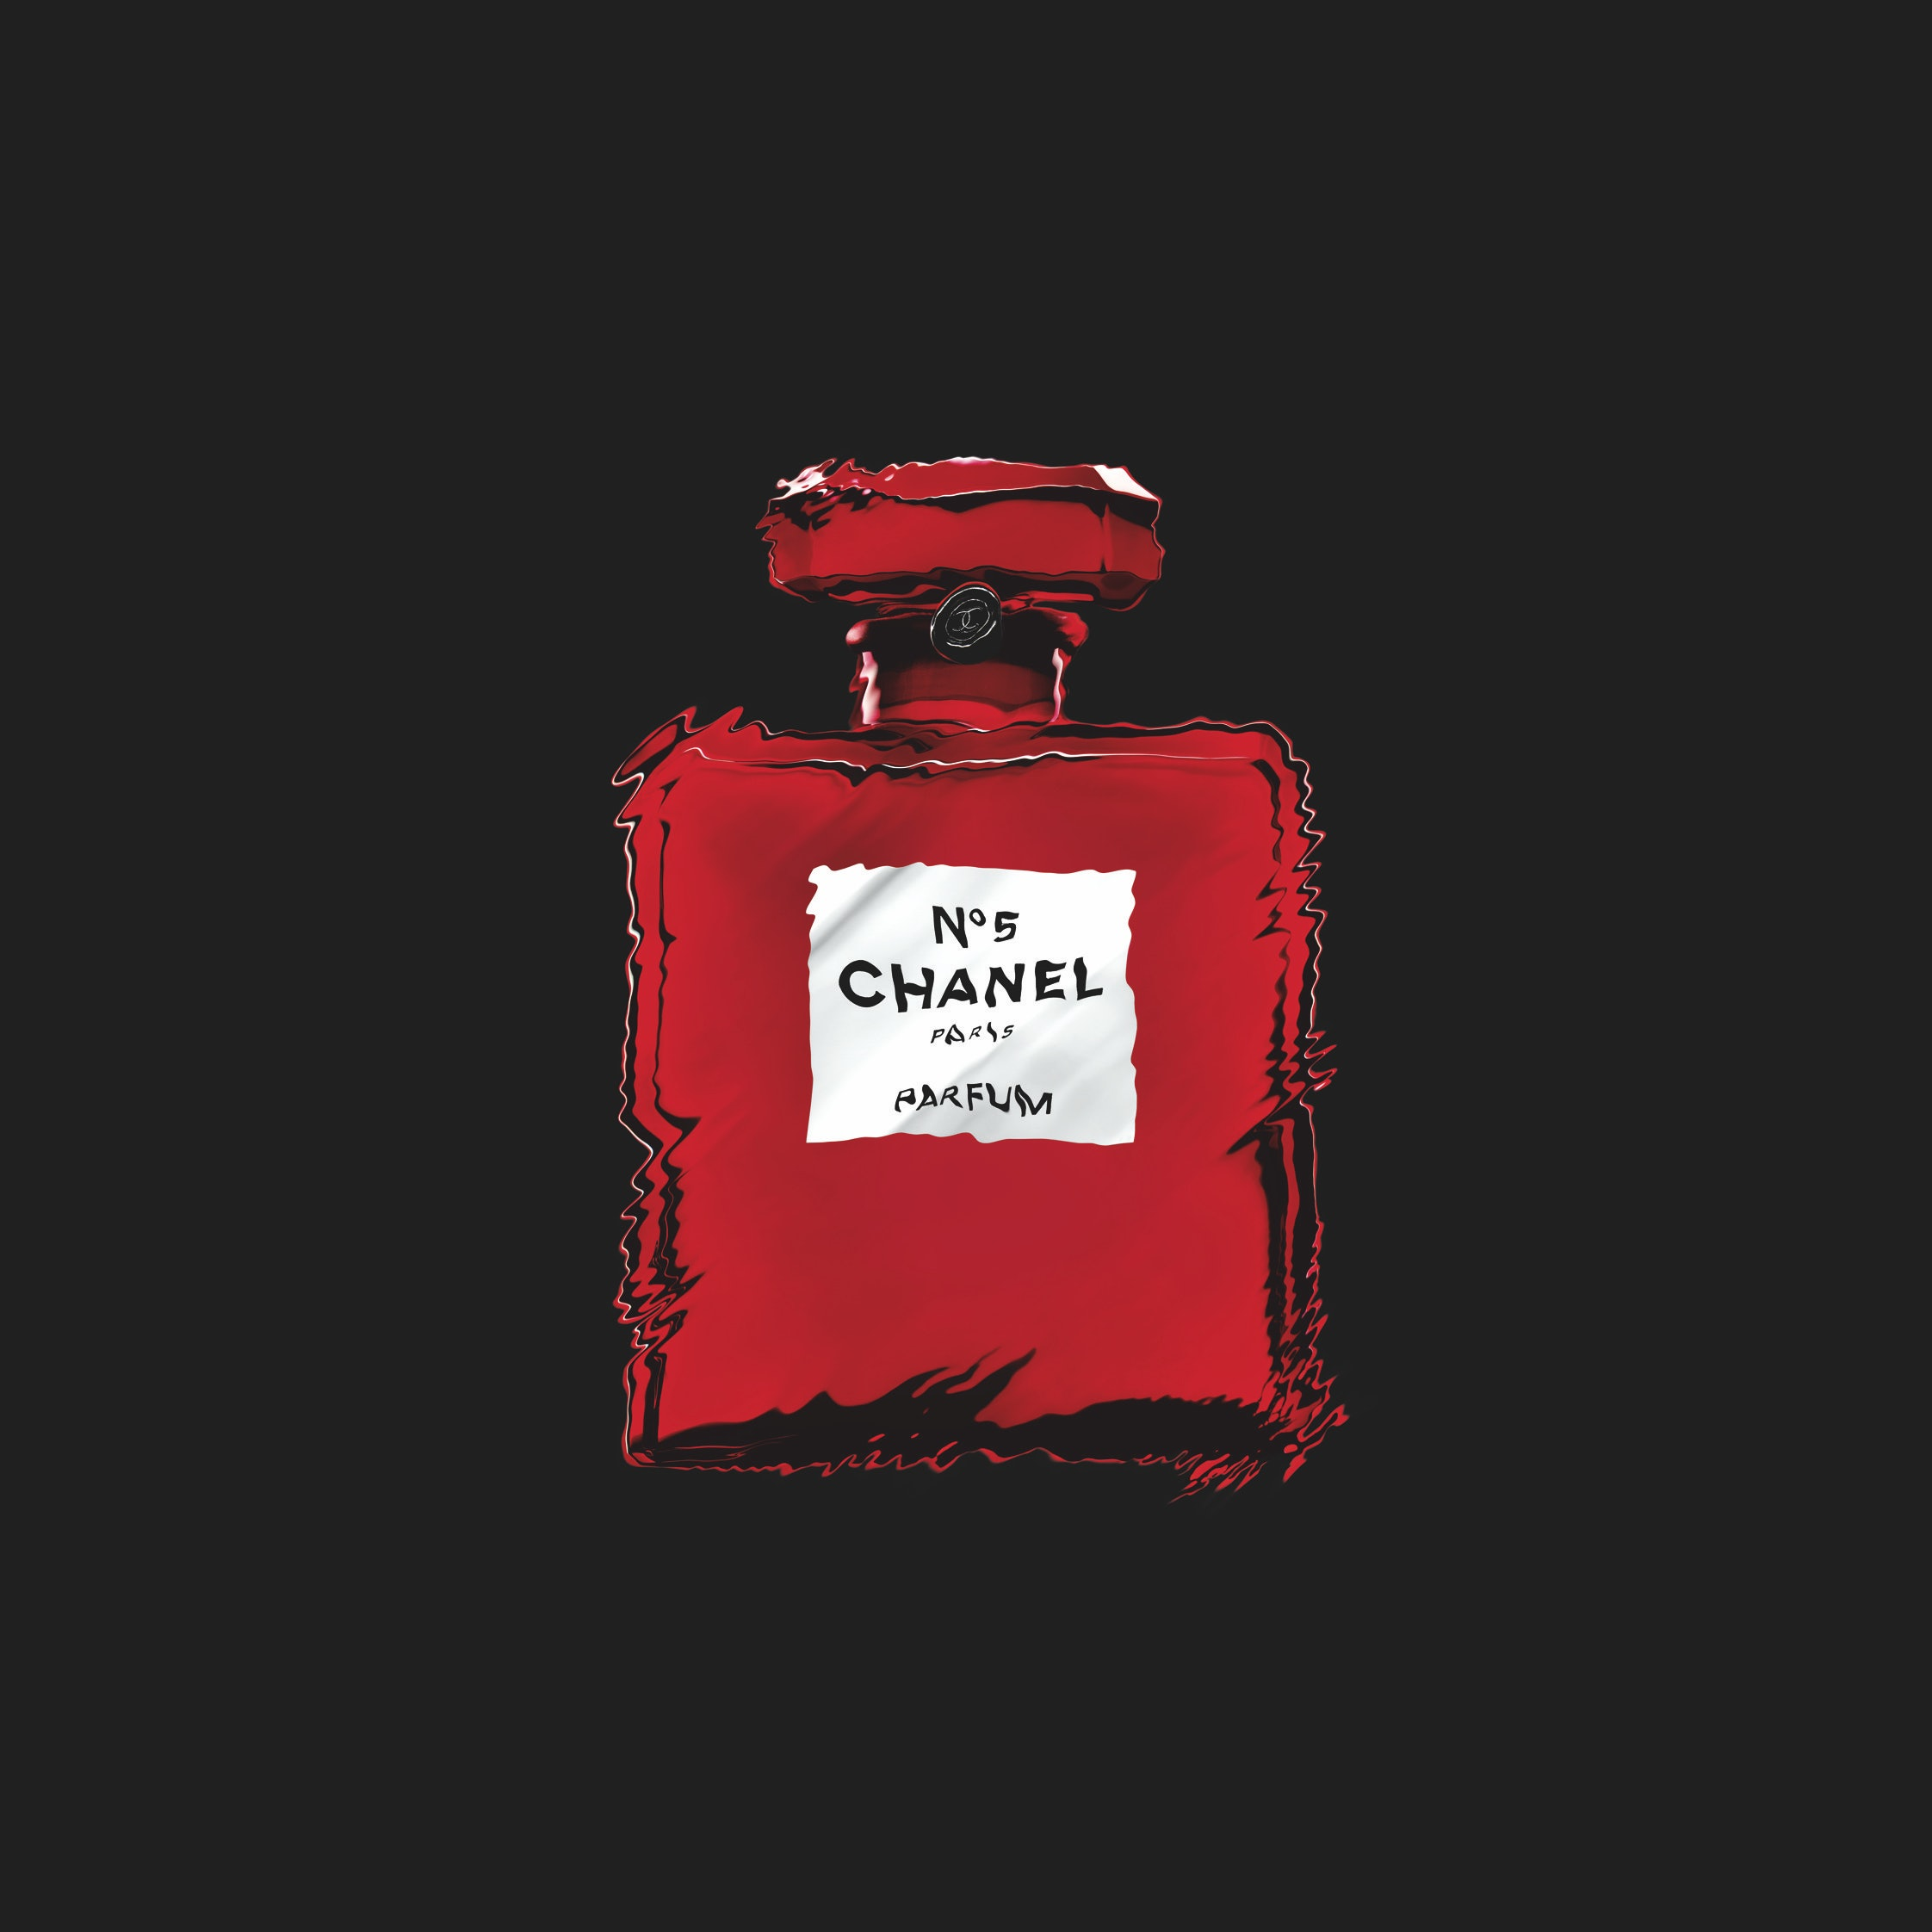 6abac05fc88b How Chanel No. 5 Became The World's Most Popular Fragrance